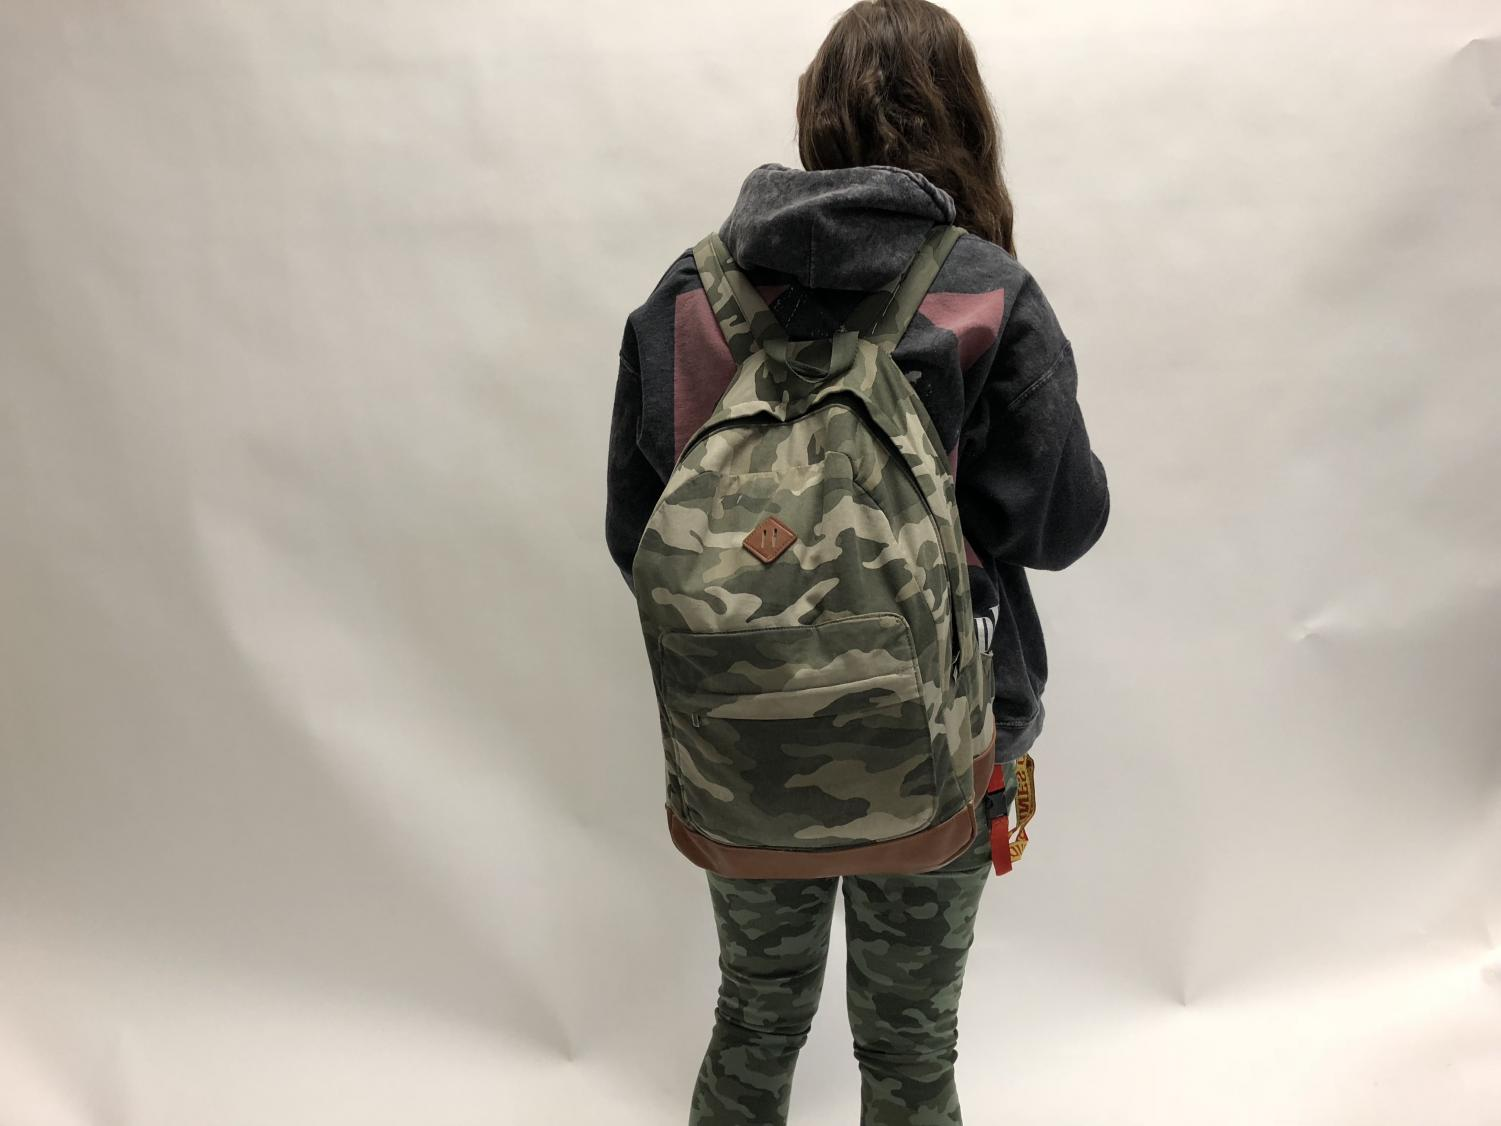 What+backpack%3F